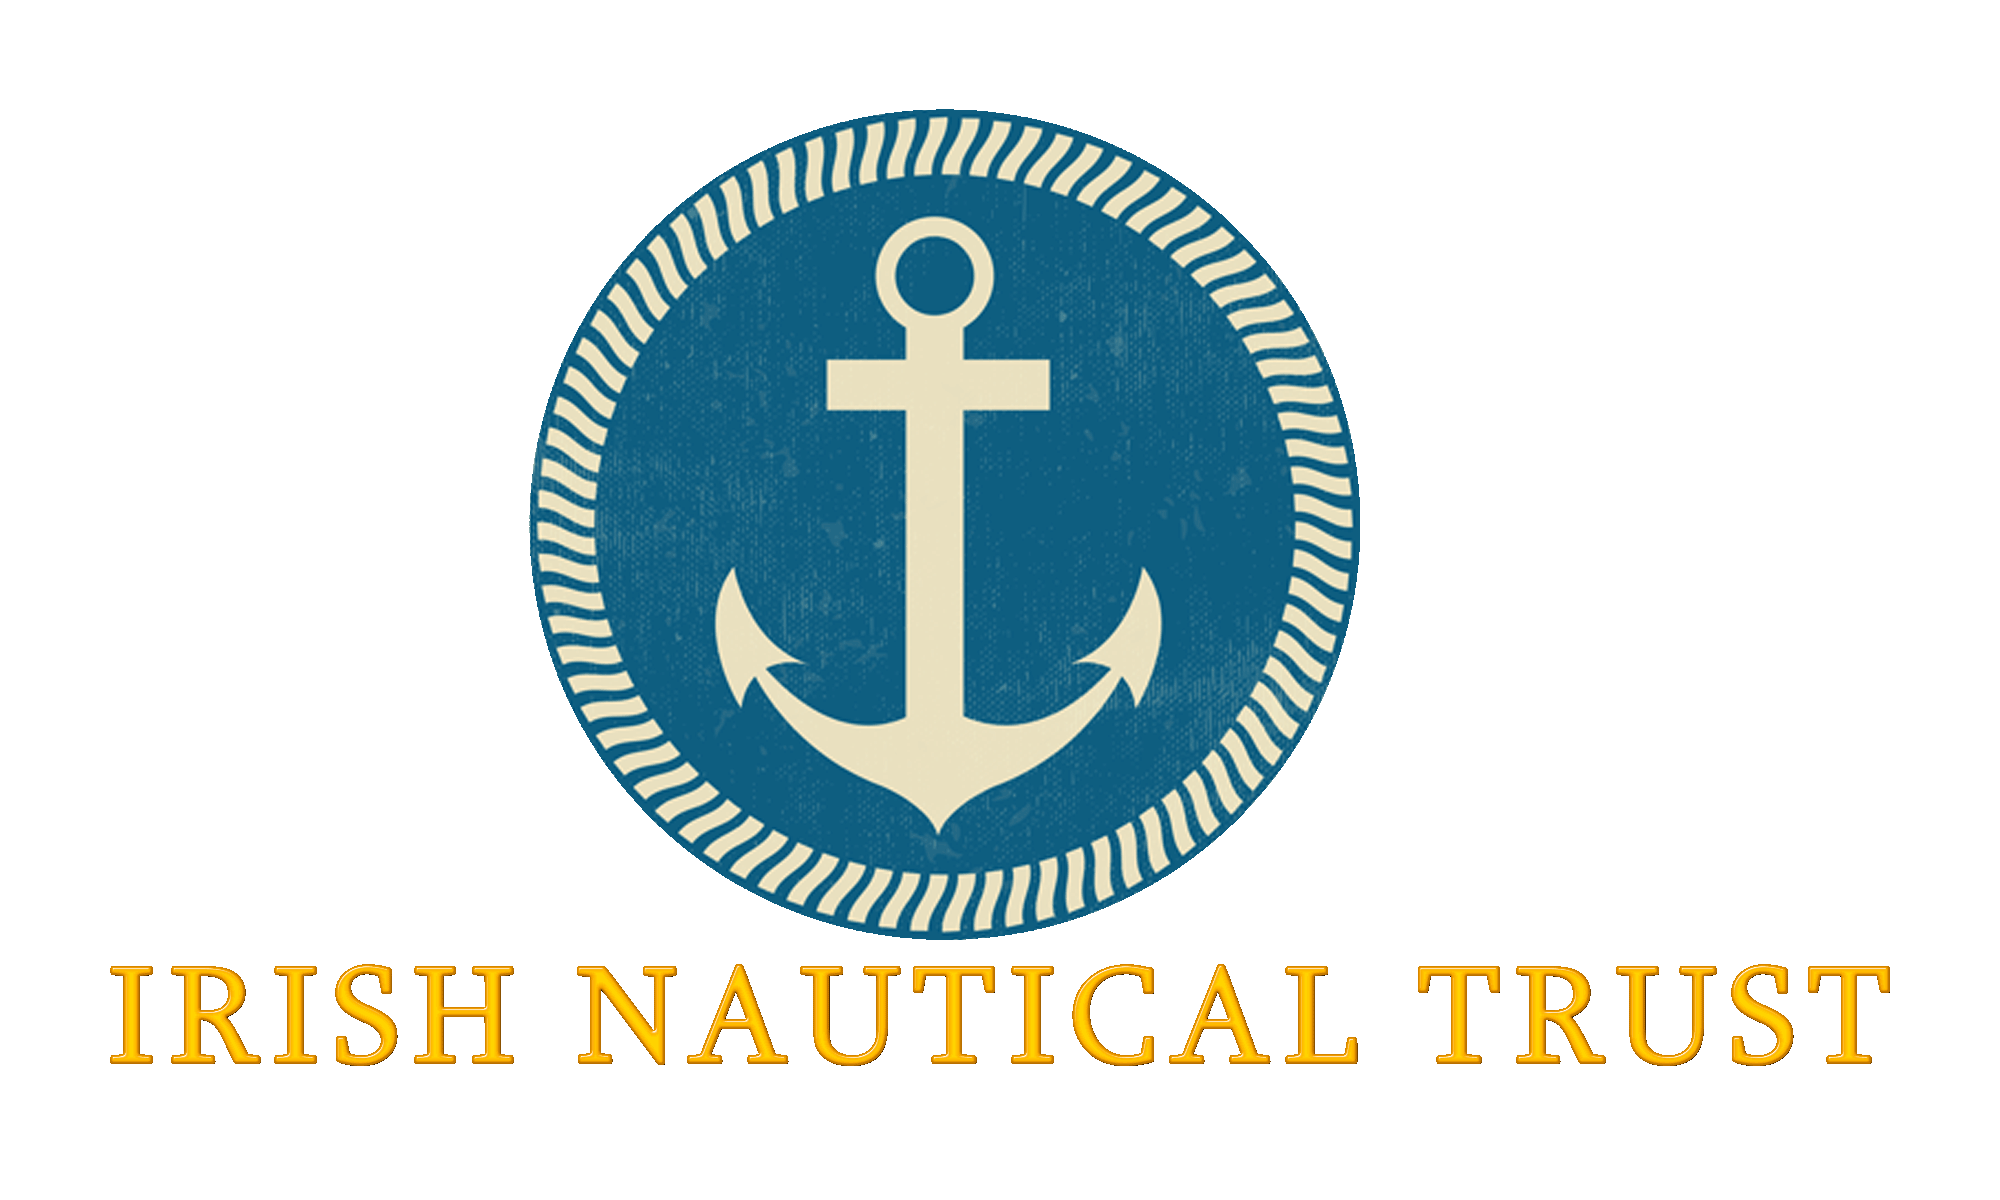 lrish Nautical Trust